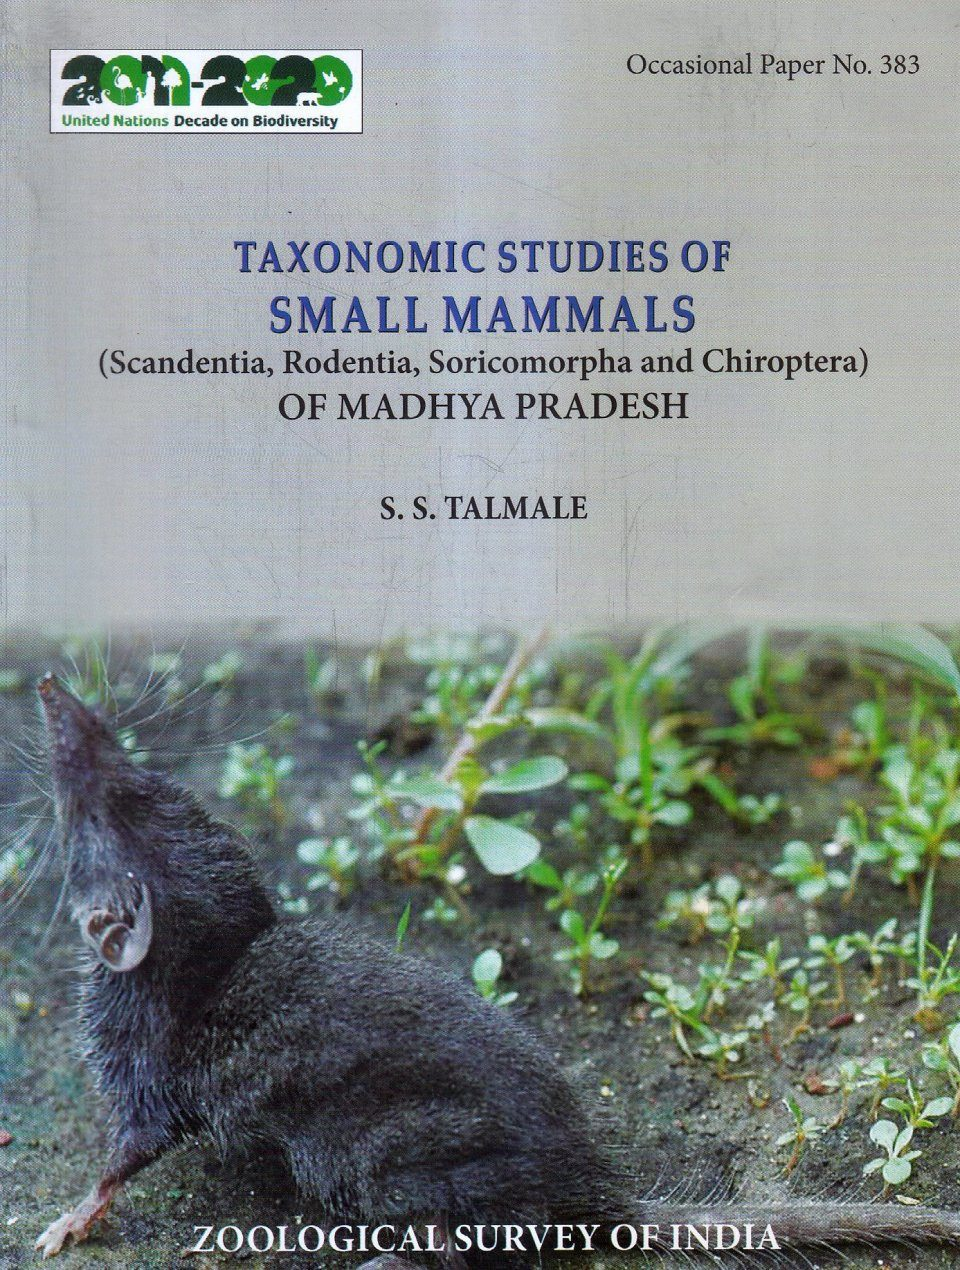 Taxonomic Studies of Small Mammals (Scandentia, Rodentia, Soricomorpha and Chiroptera) of Madhya Pradesh